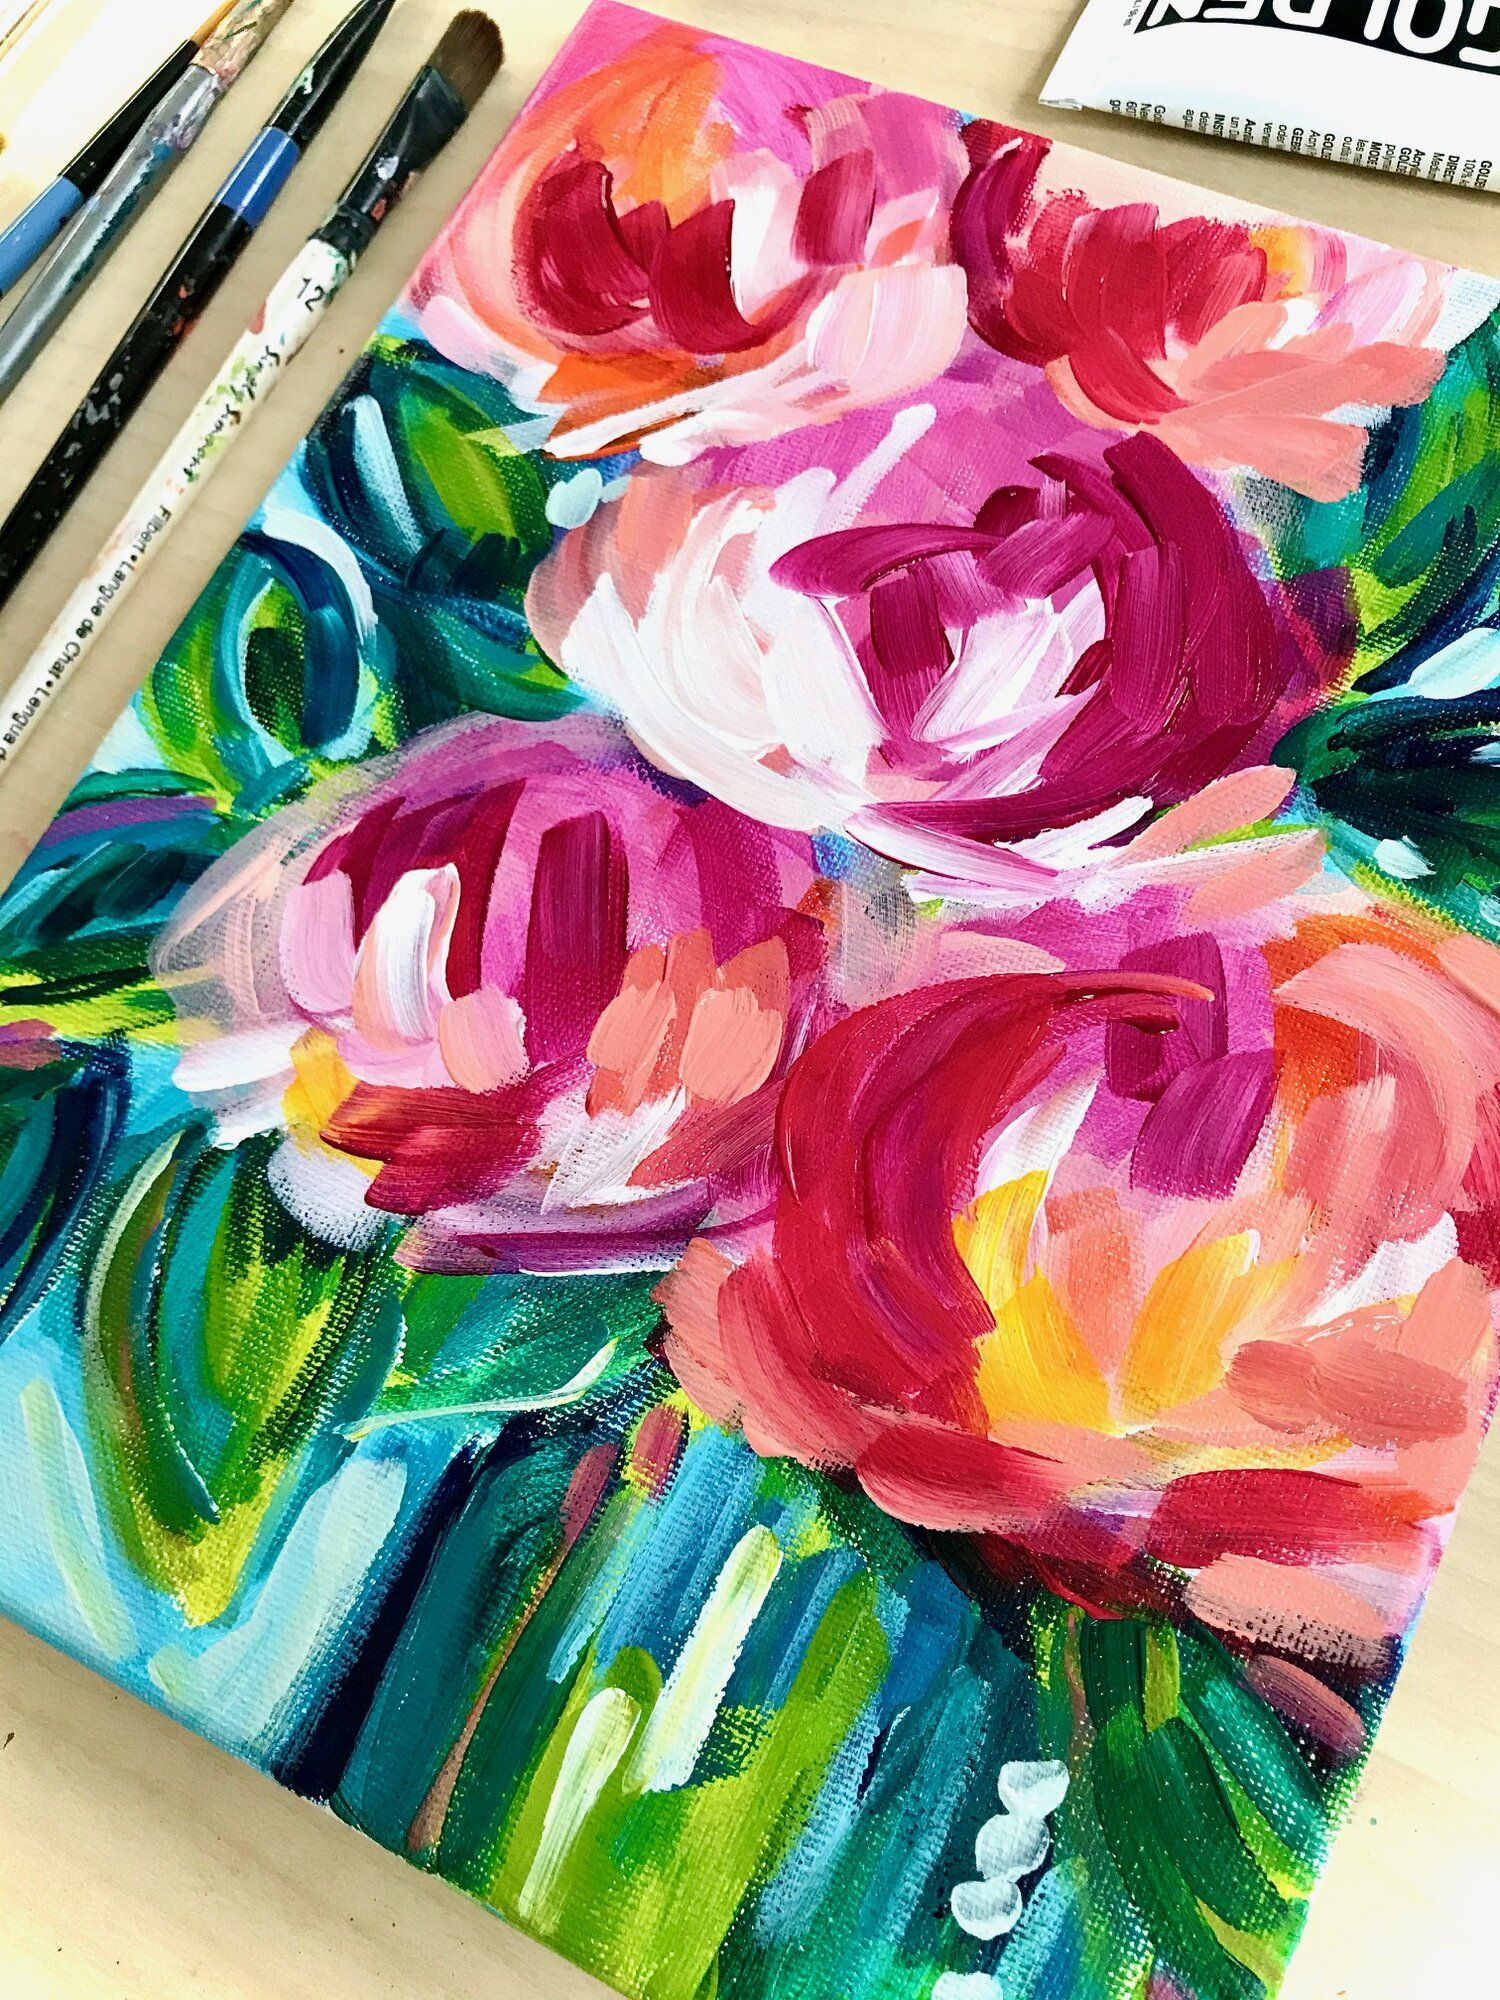 The One Thing That Will Improve Your Acrylic Painting Skills Elle Byers Art In 2020 Abstract Flower Painting Easy Flower Painting Acrylic Painting For Beginners